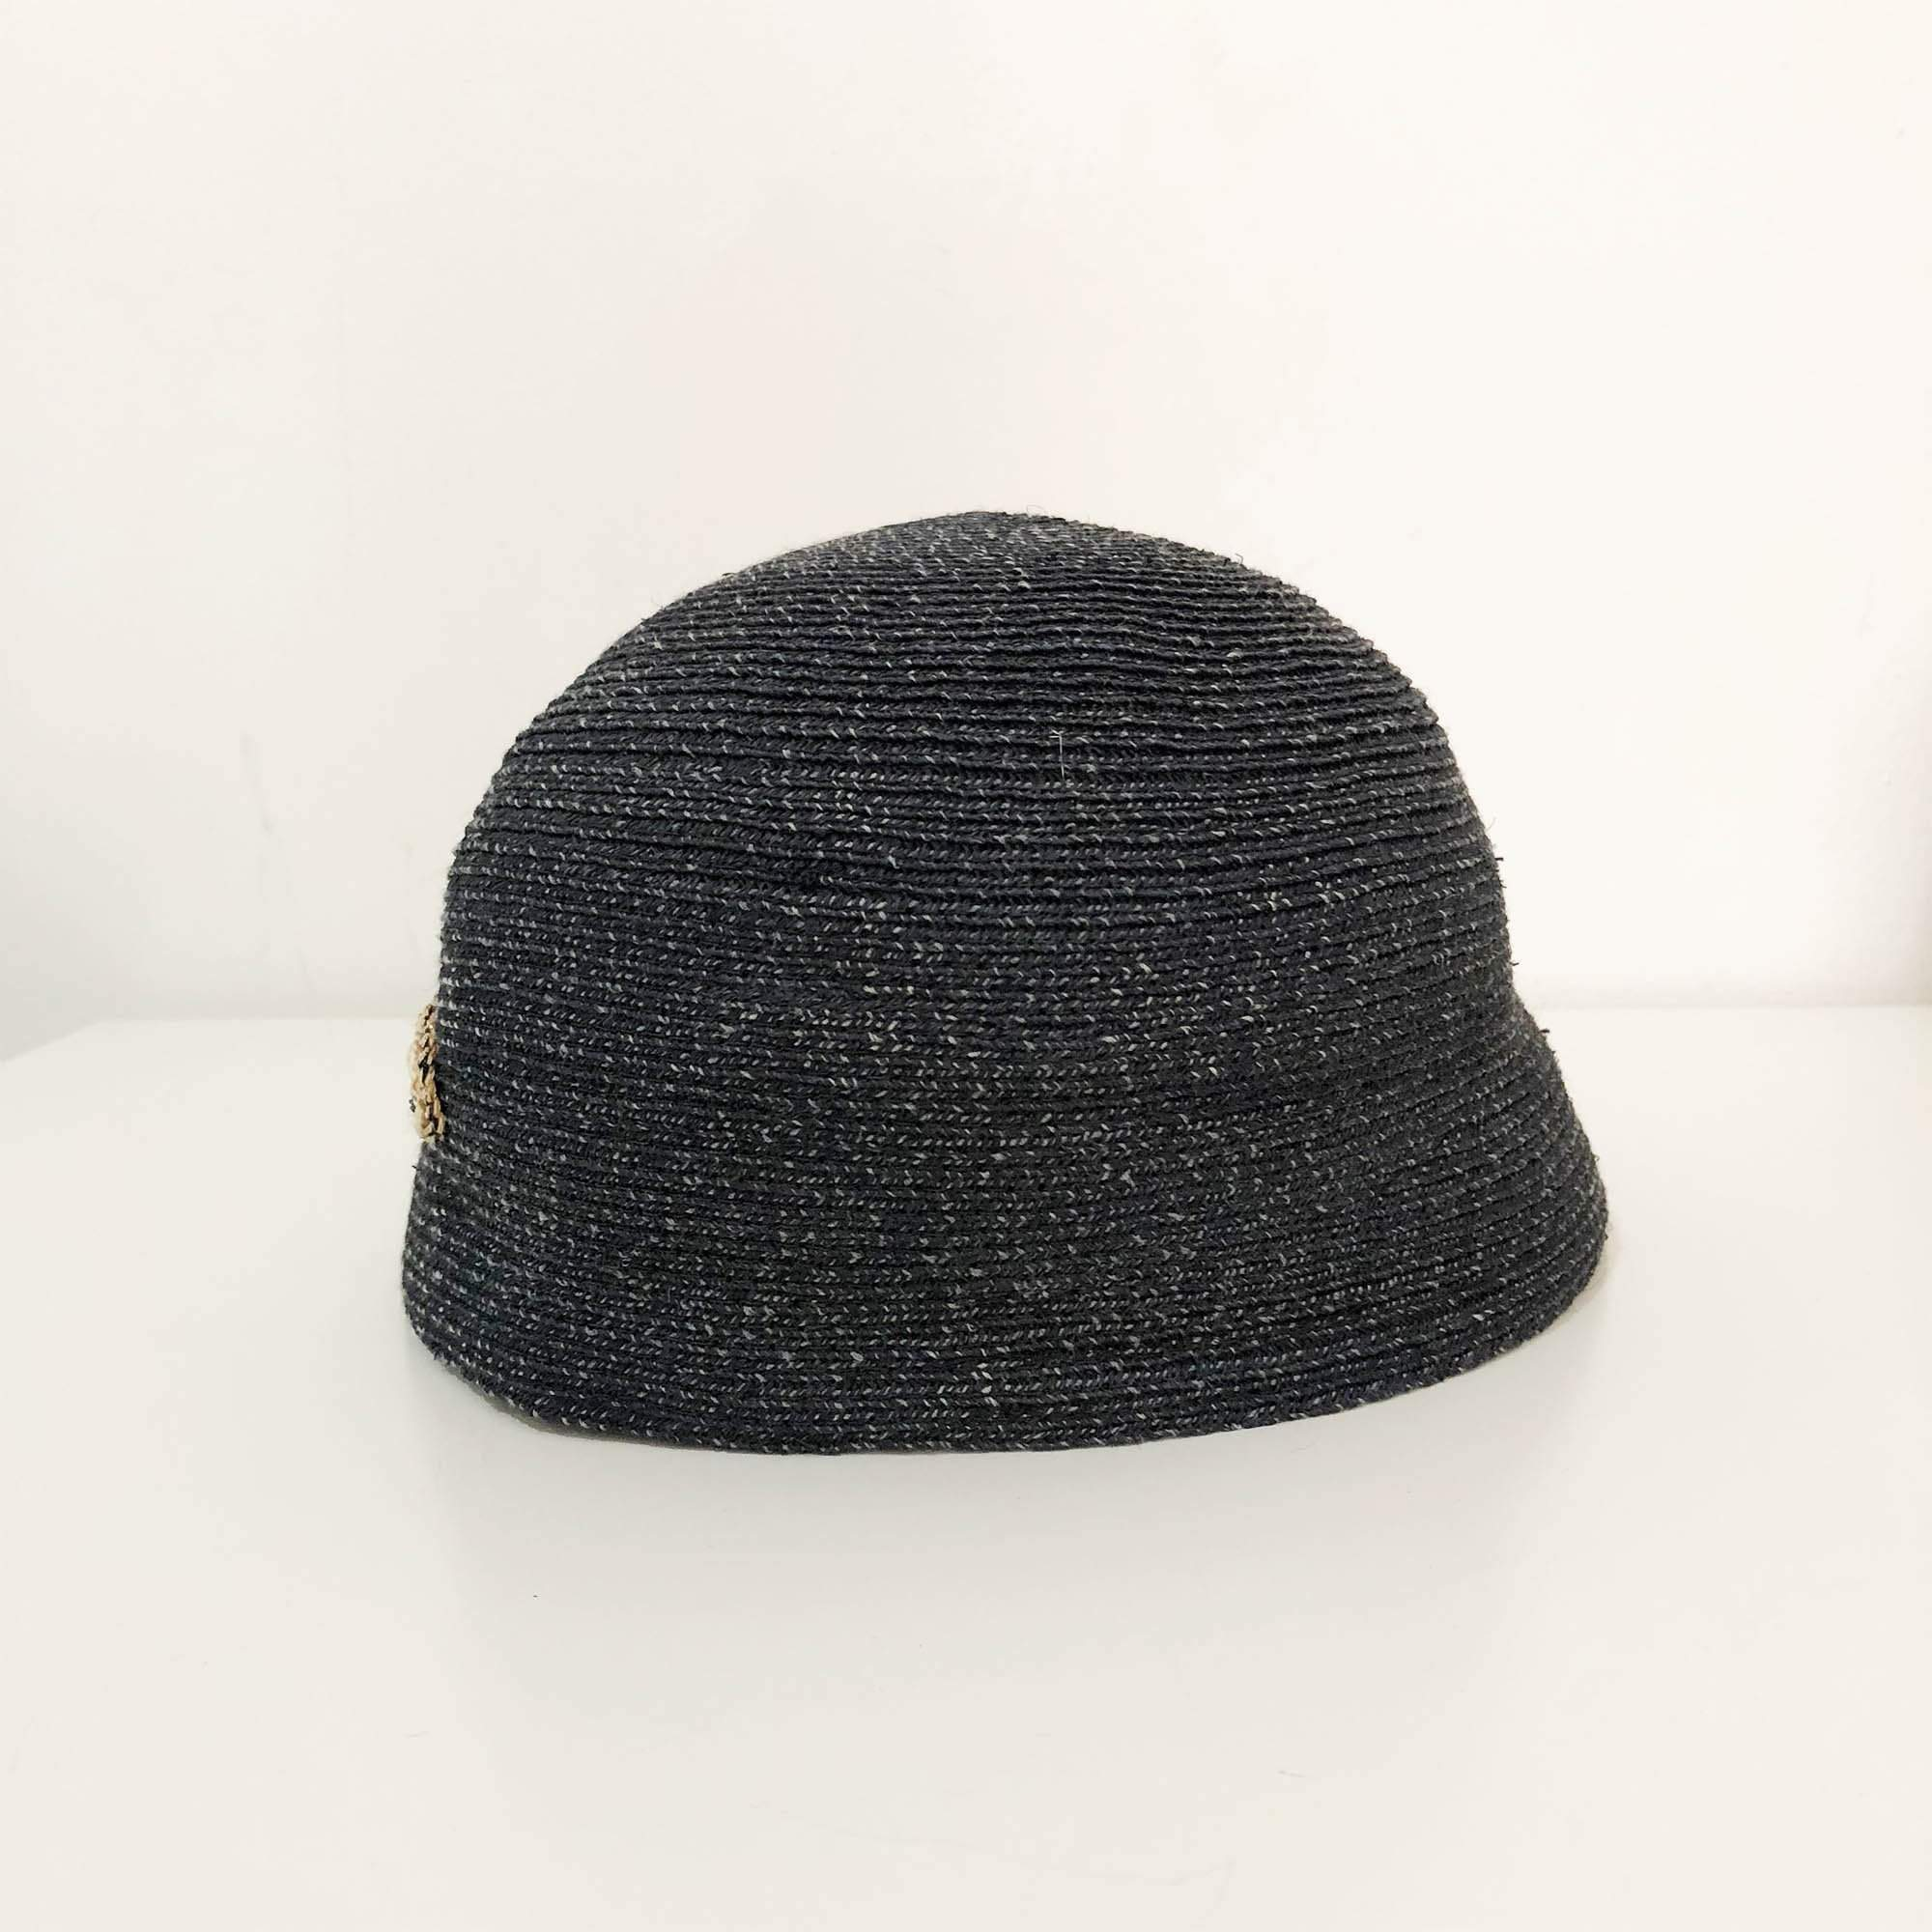 Chanel Woven Straw Dark Grey Hat